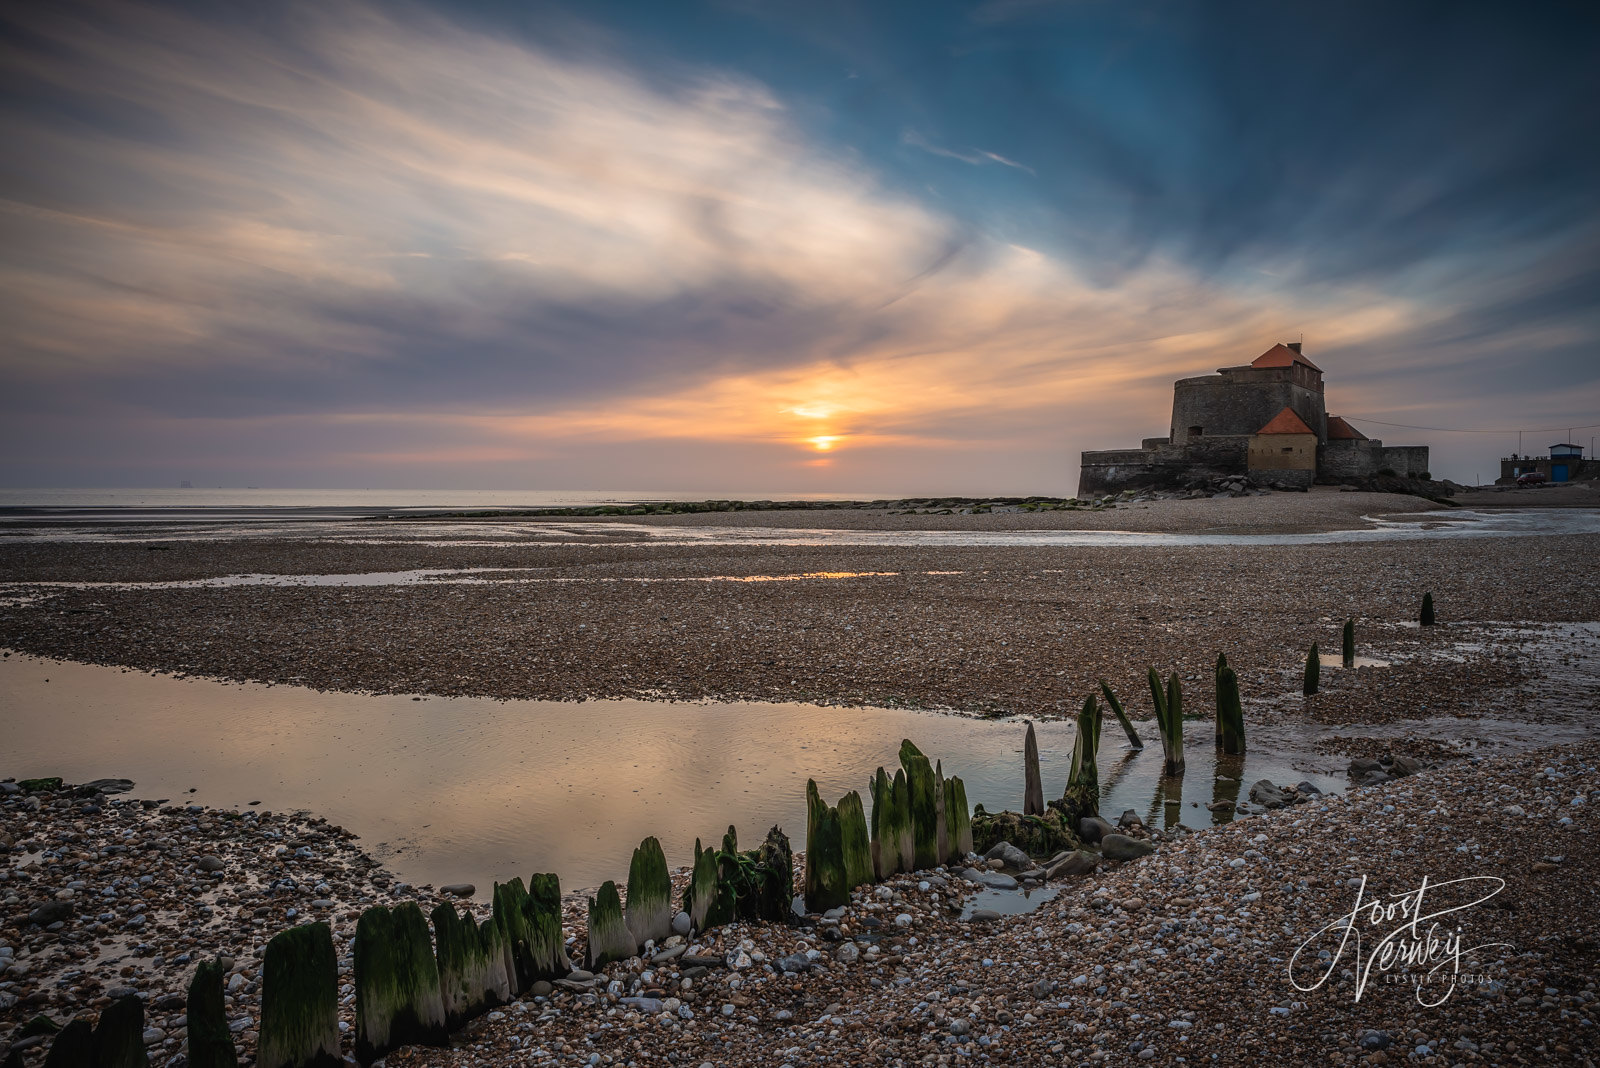 Fort Mahon in Ambleteuse during sunset at low tide